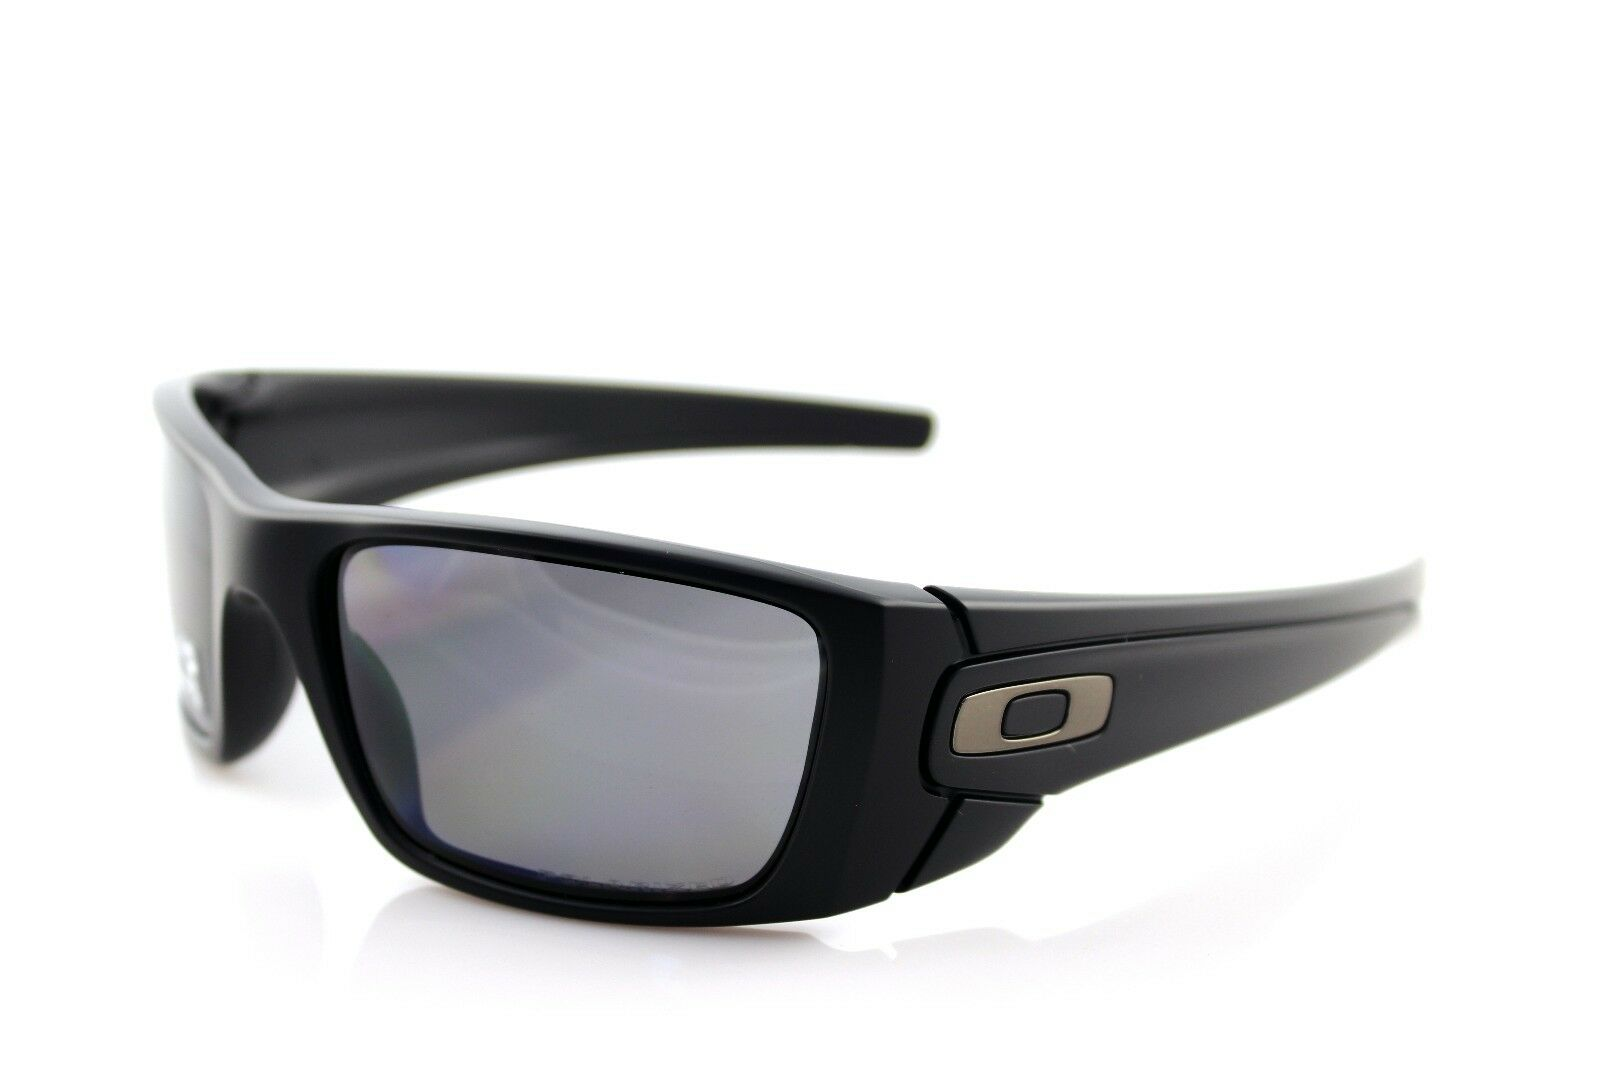 b1efaf800b0 Men Sunglasses Oakley Oo9096 Fuel Cell Polarized 909605 60 for sale online